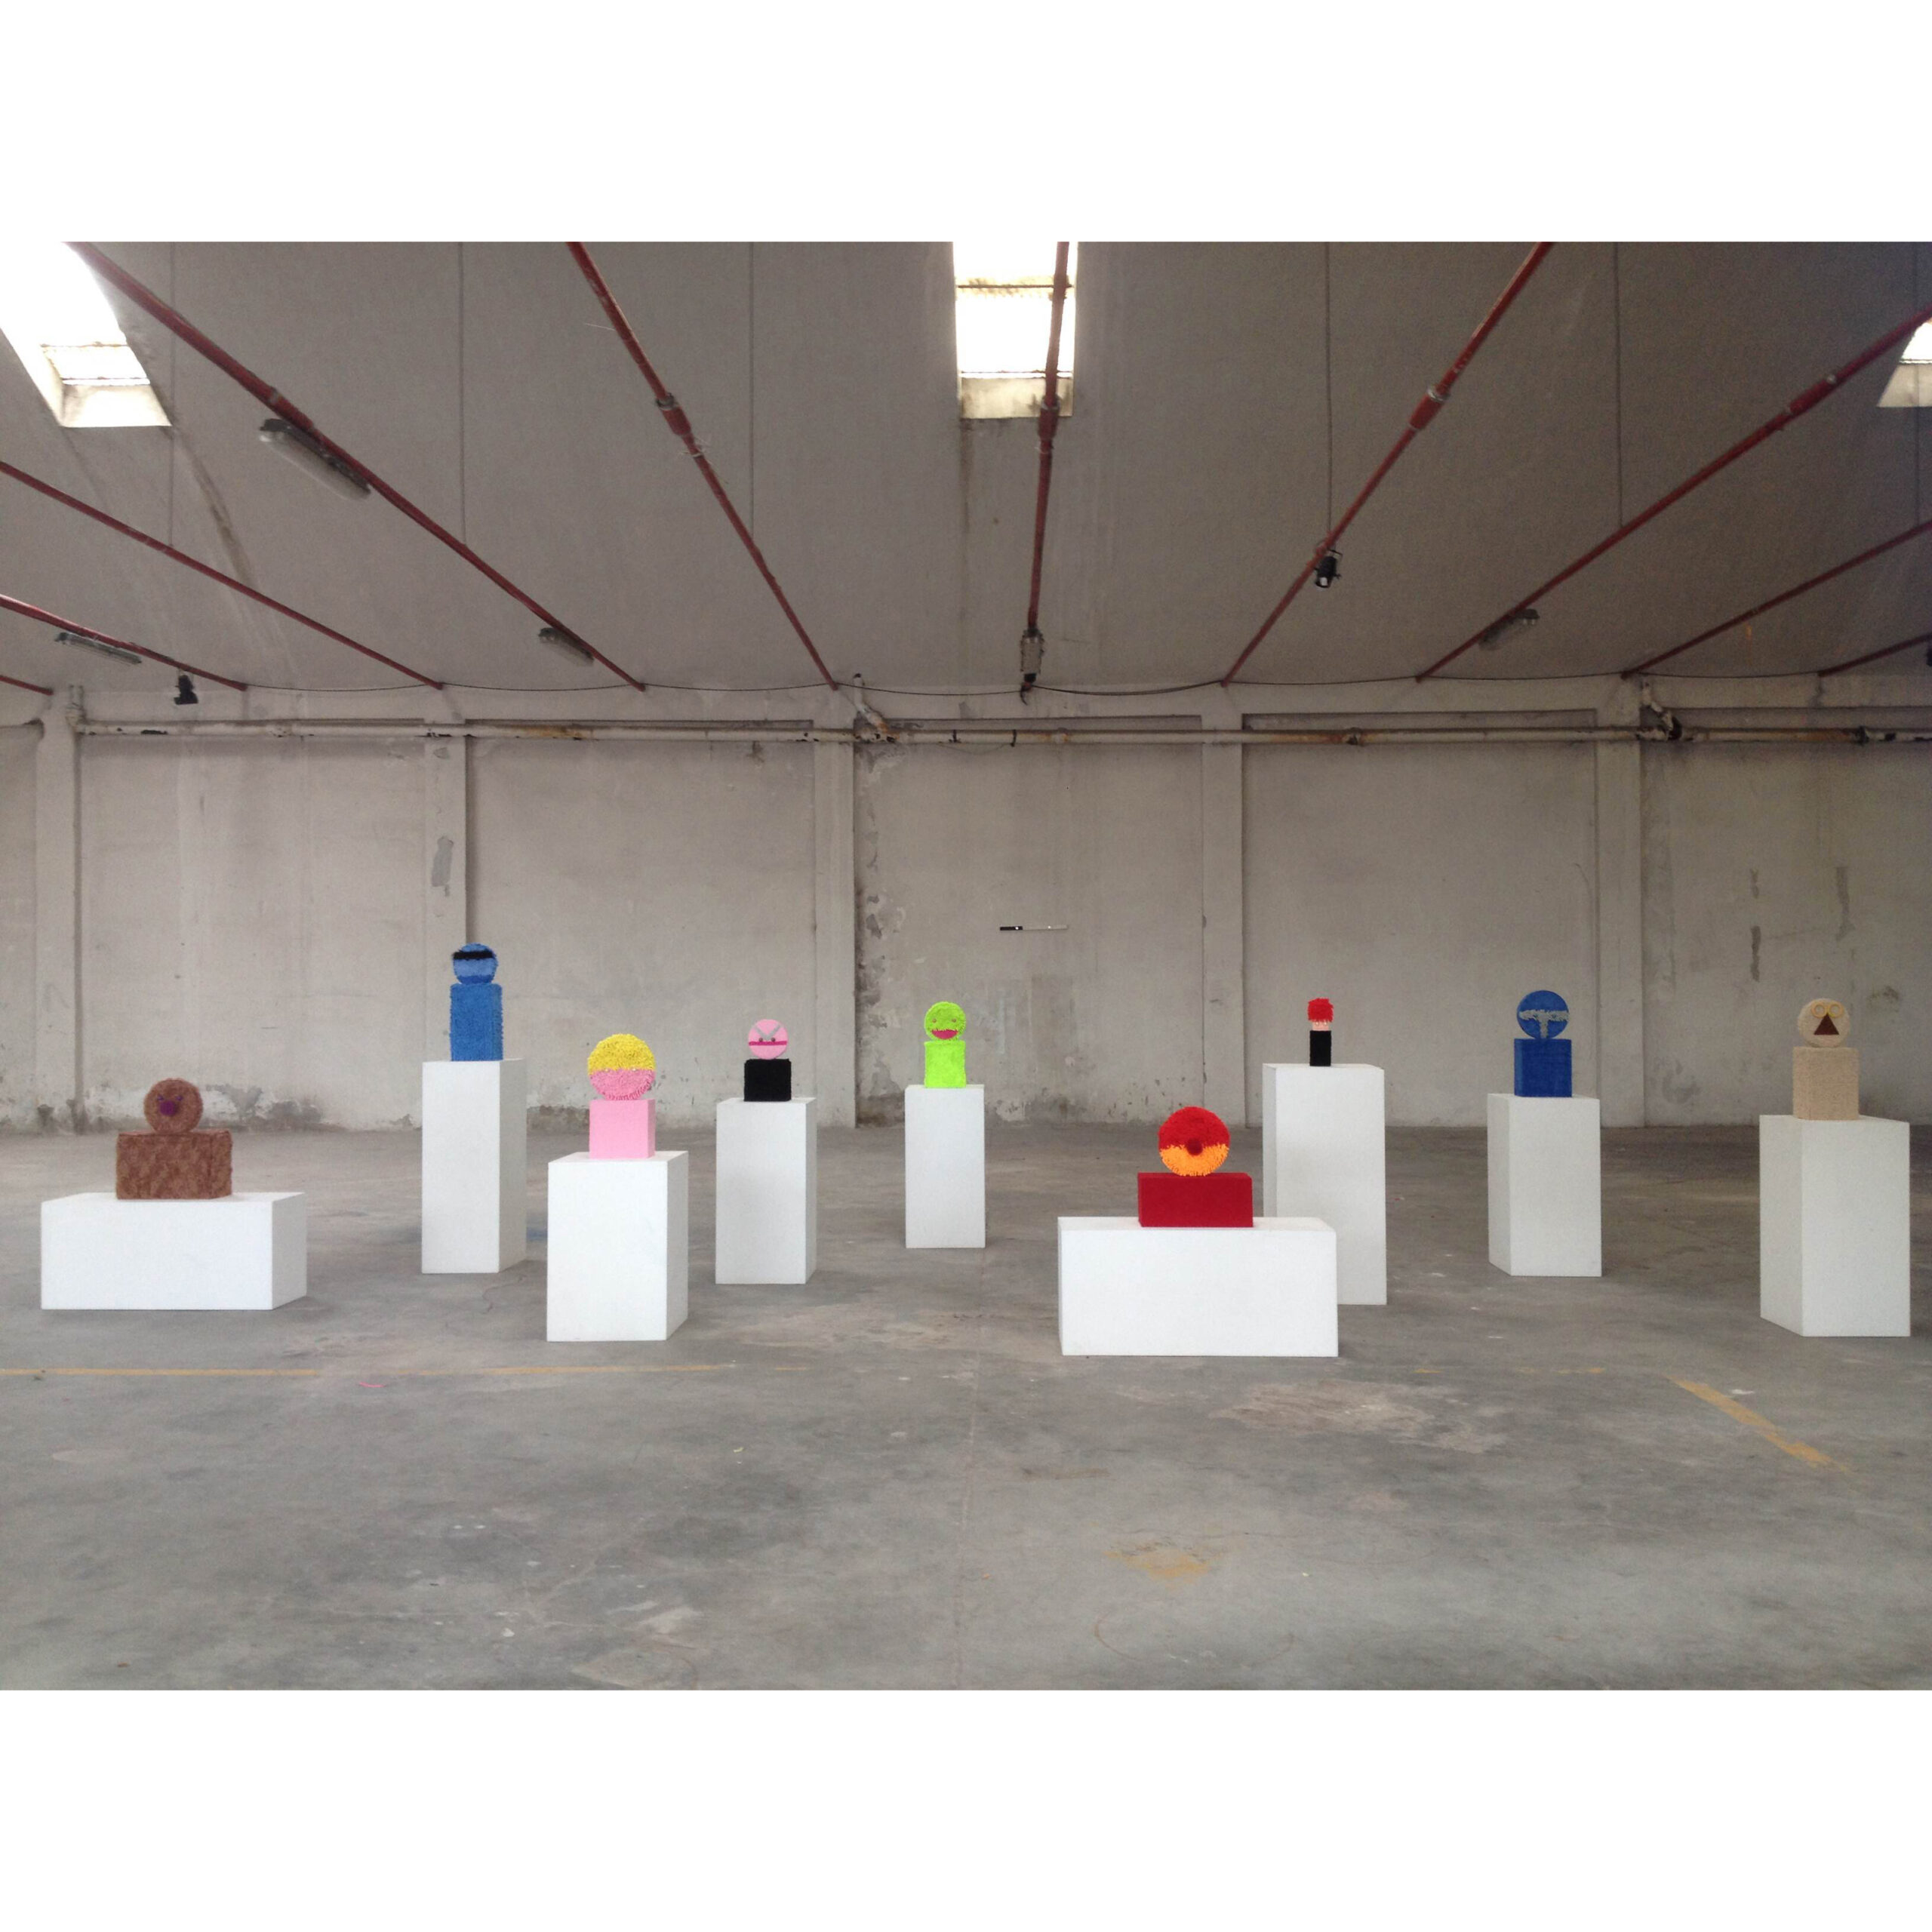 Nicola Gobbetto - MAN OR MUPPET?, 2015, installation view